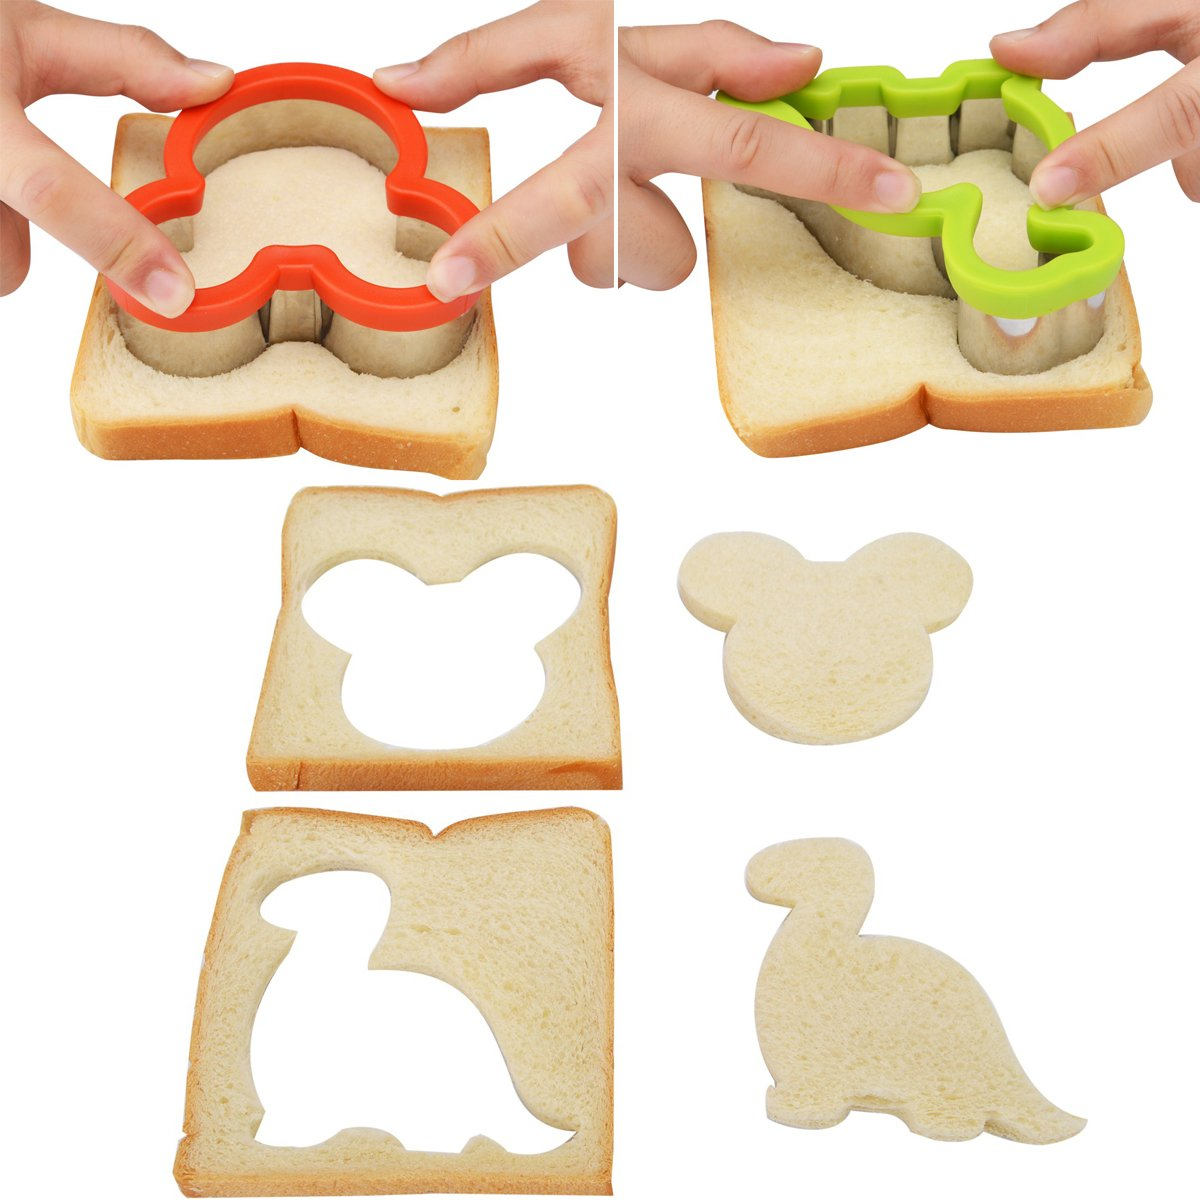 8 Piece Stainless Steel Sandwiches Cutter, Mickey Mouse & Dinosaur Cookie Cutter, Food Grade Biscuit Mold Cookie Cutter for Kids Suitable for Cakes and Cookie by Kspowwin (Image #4)